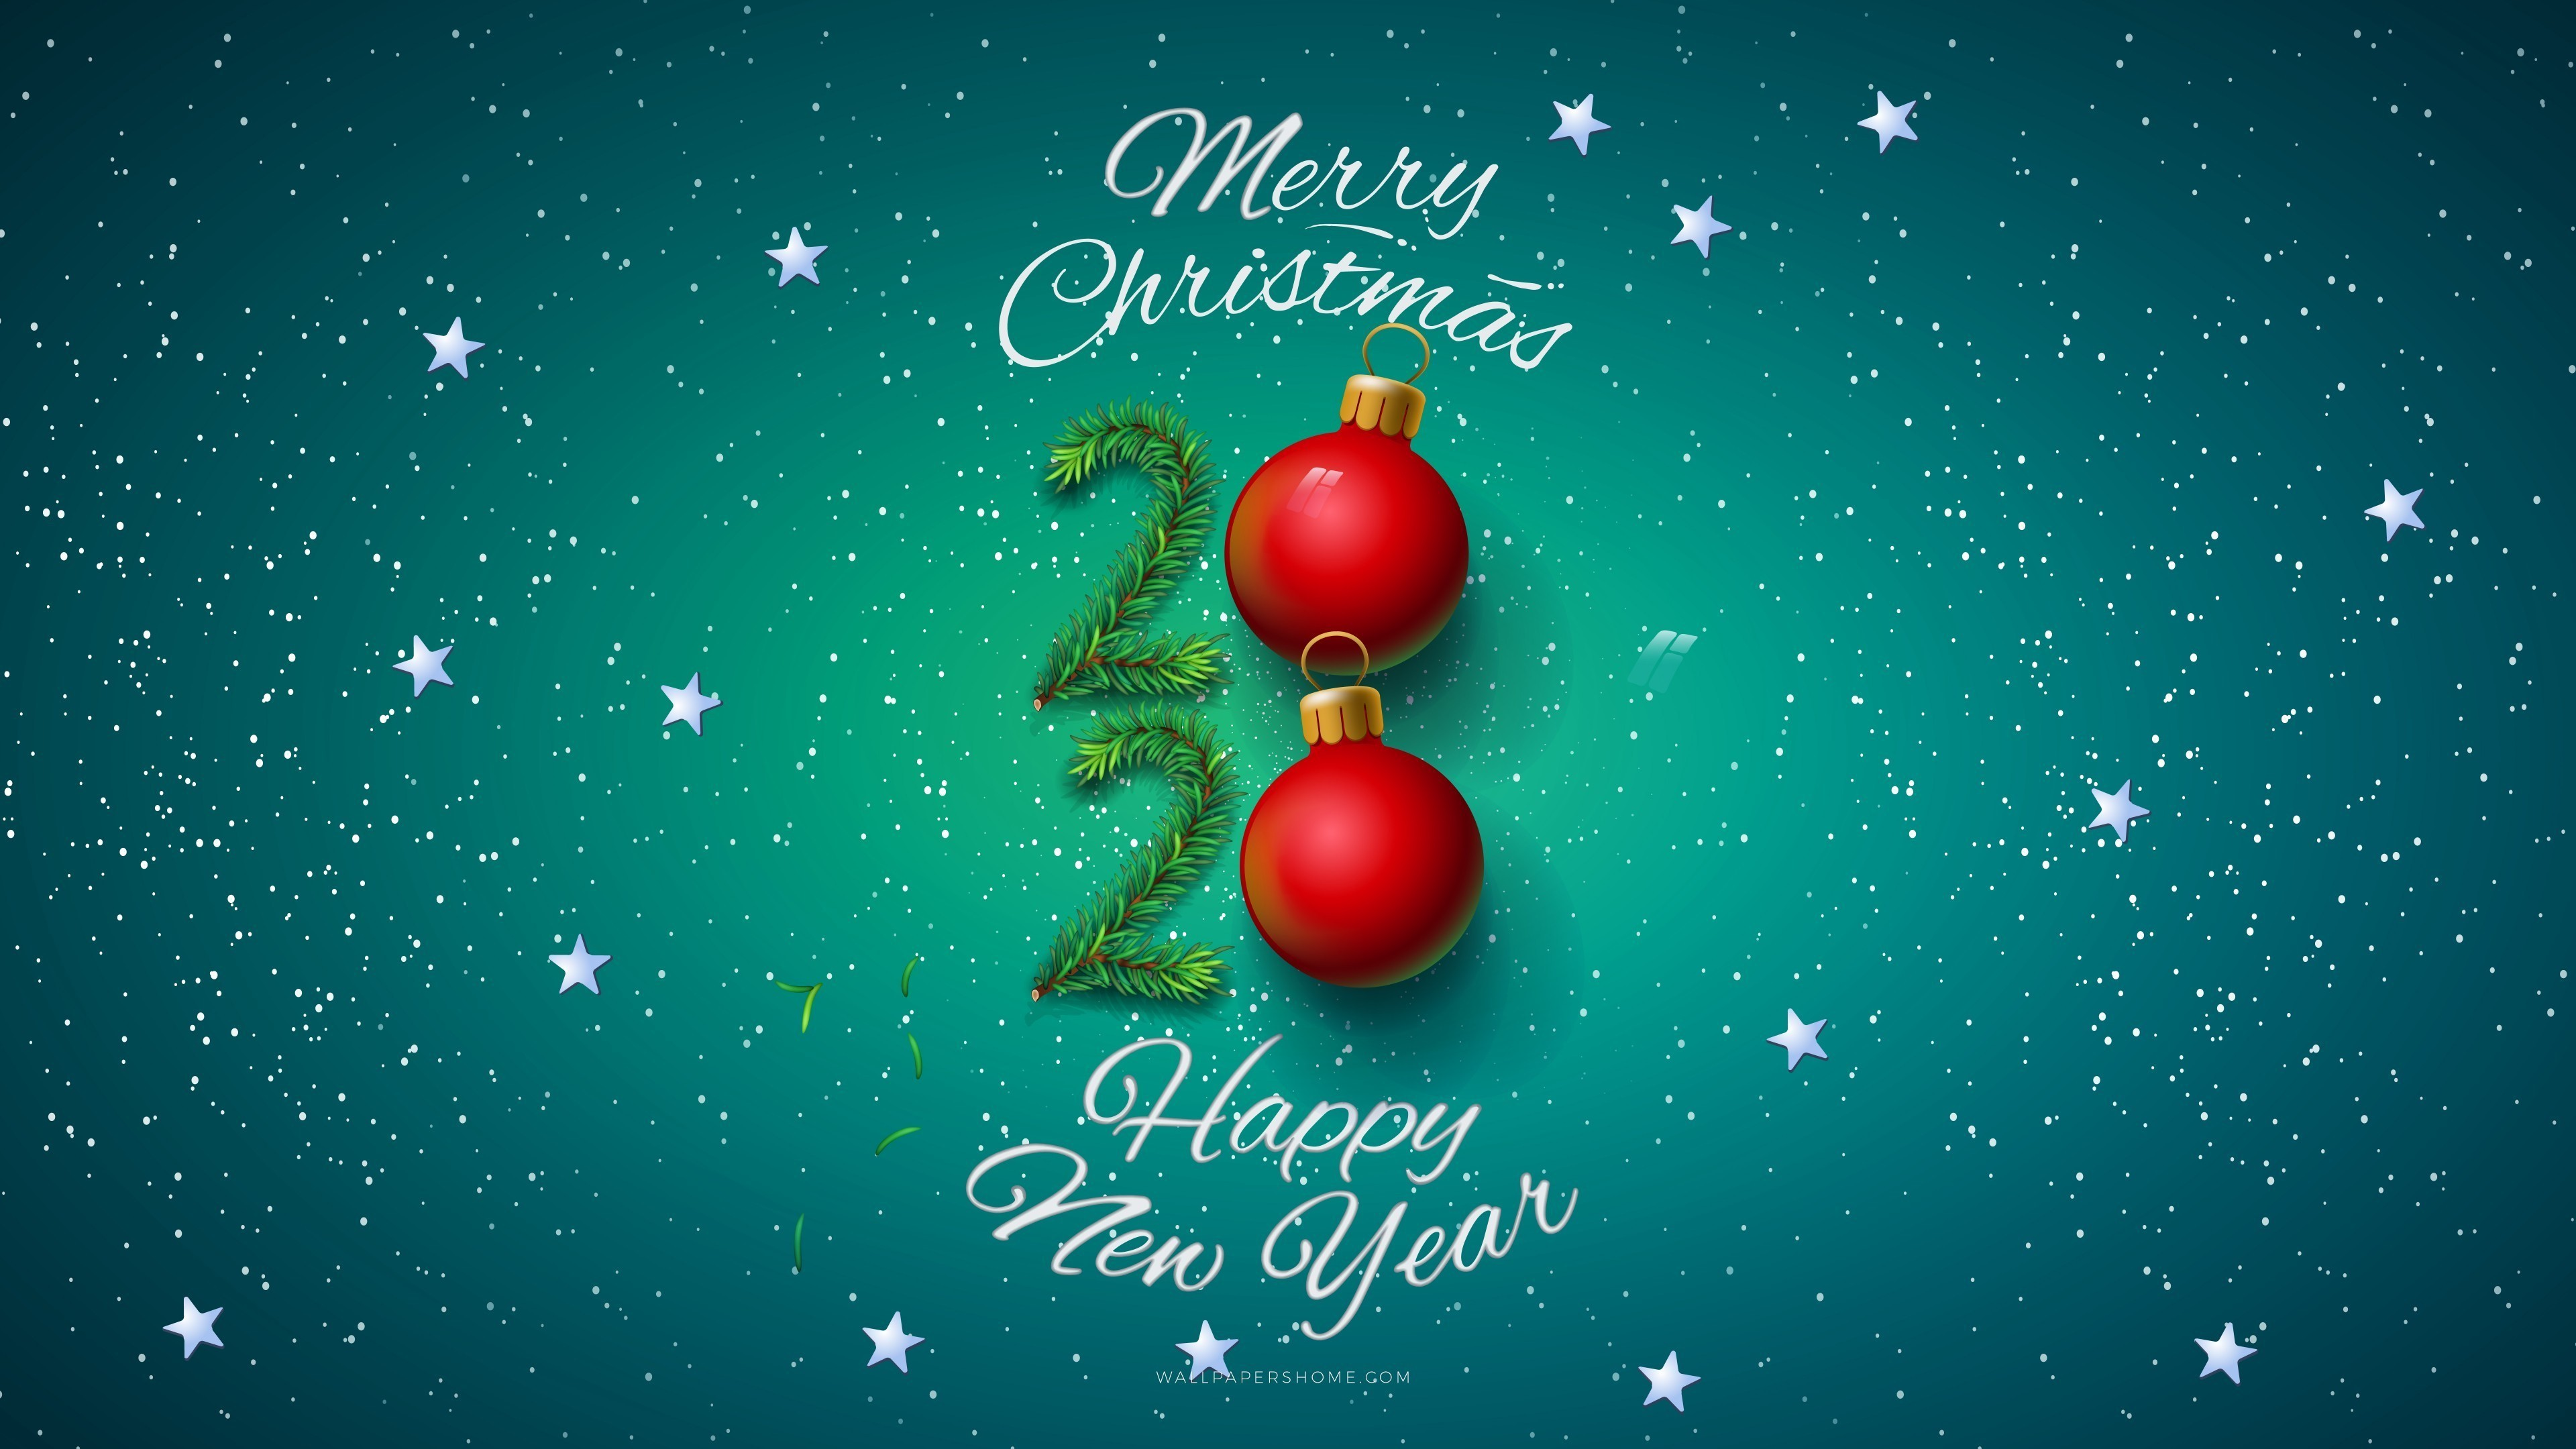 Merry Christmas with Happy New Year 2020 HD Wallpapers 3840x2160